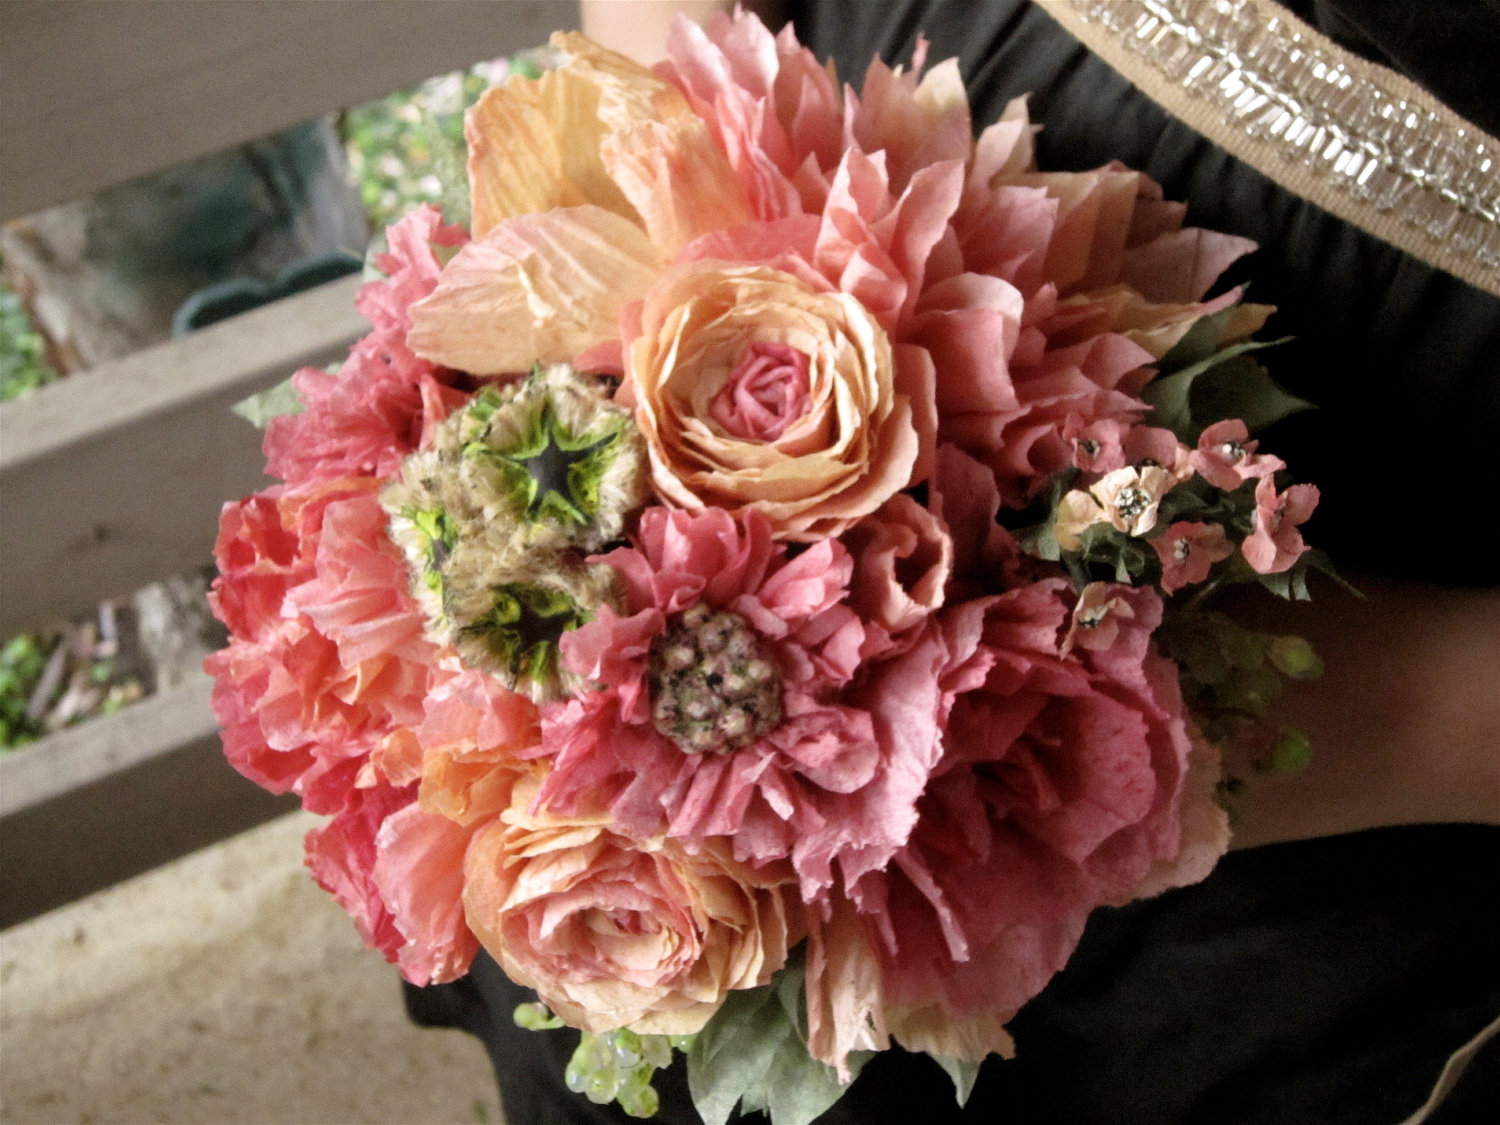 Wedding Paper Bouquet Of Flowers : Lq designs etsy featured item